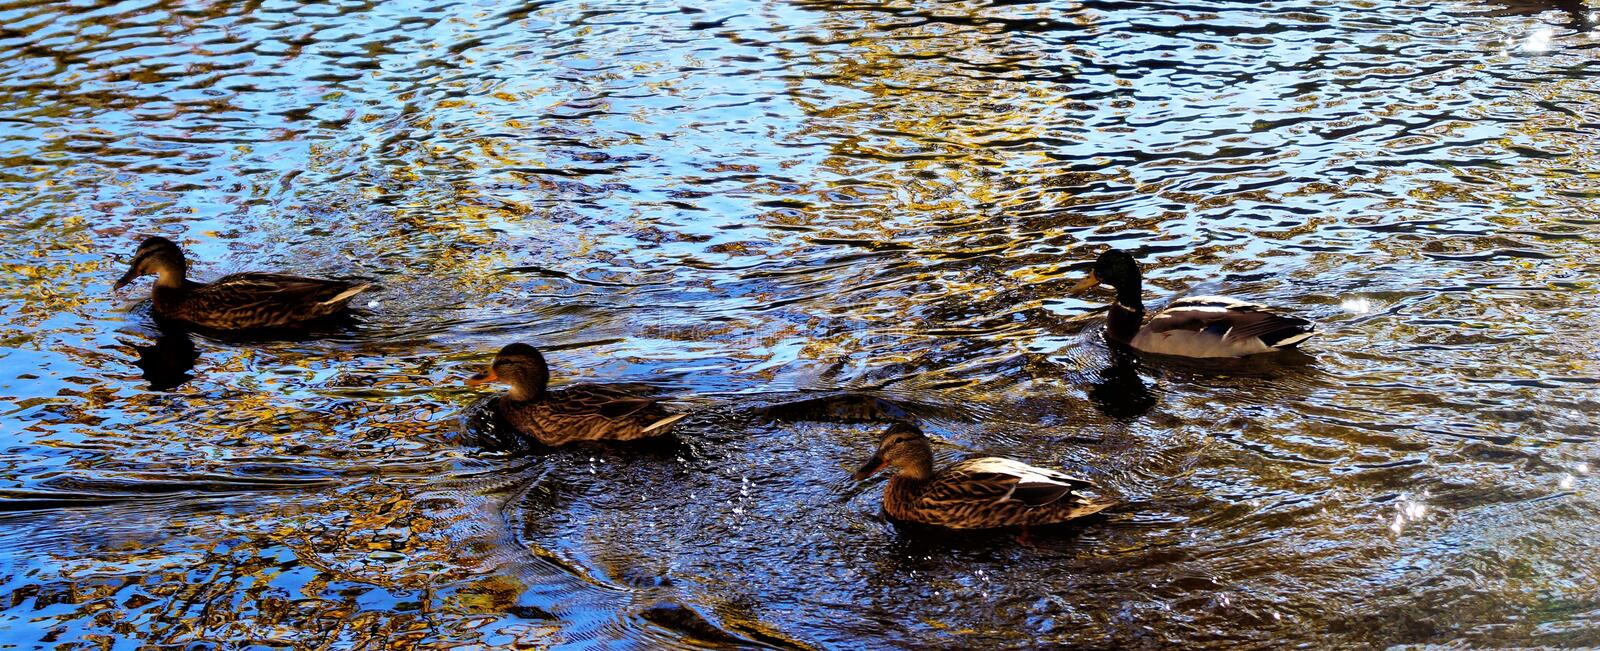 Wild Ducks Mallard swim in a forest lake, the water shines brightly in the sun. royalty free stock images